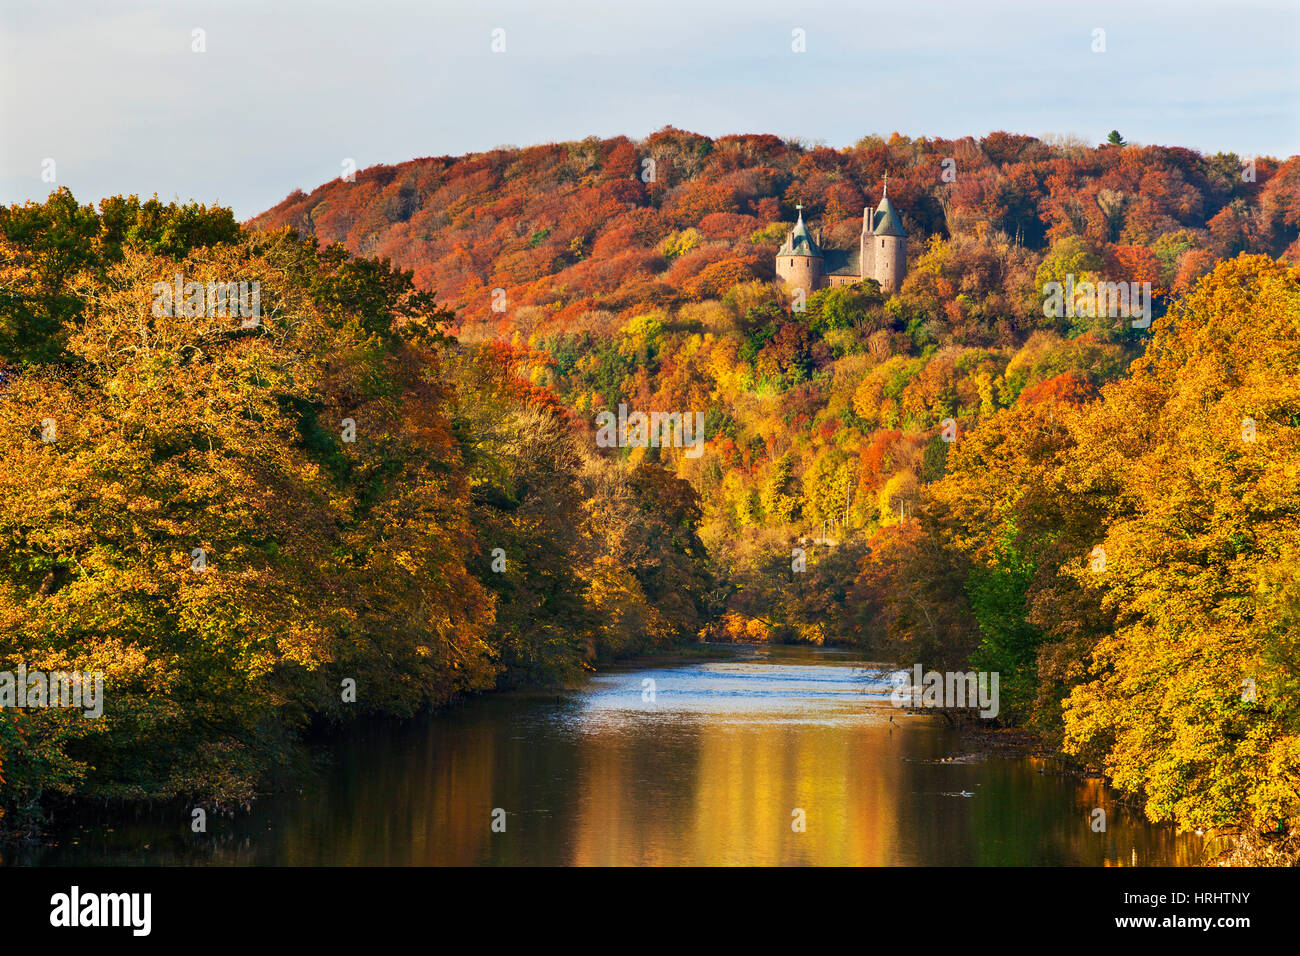 Castle Coch (Castell Coch) (The Red Castle) in autumn, Tongwynlais, Cardiff, Wales, United Kingdom - Stock Image